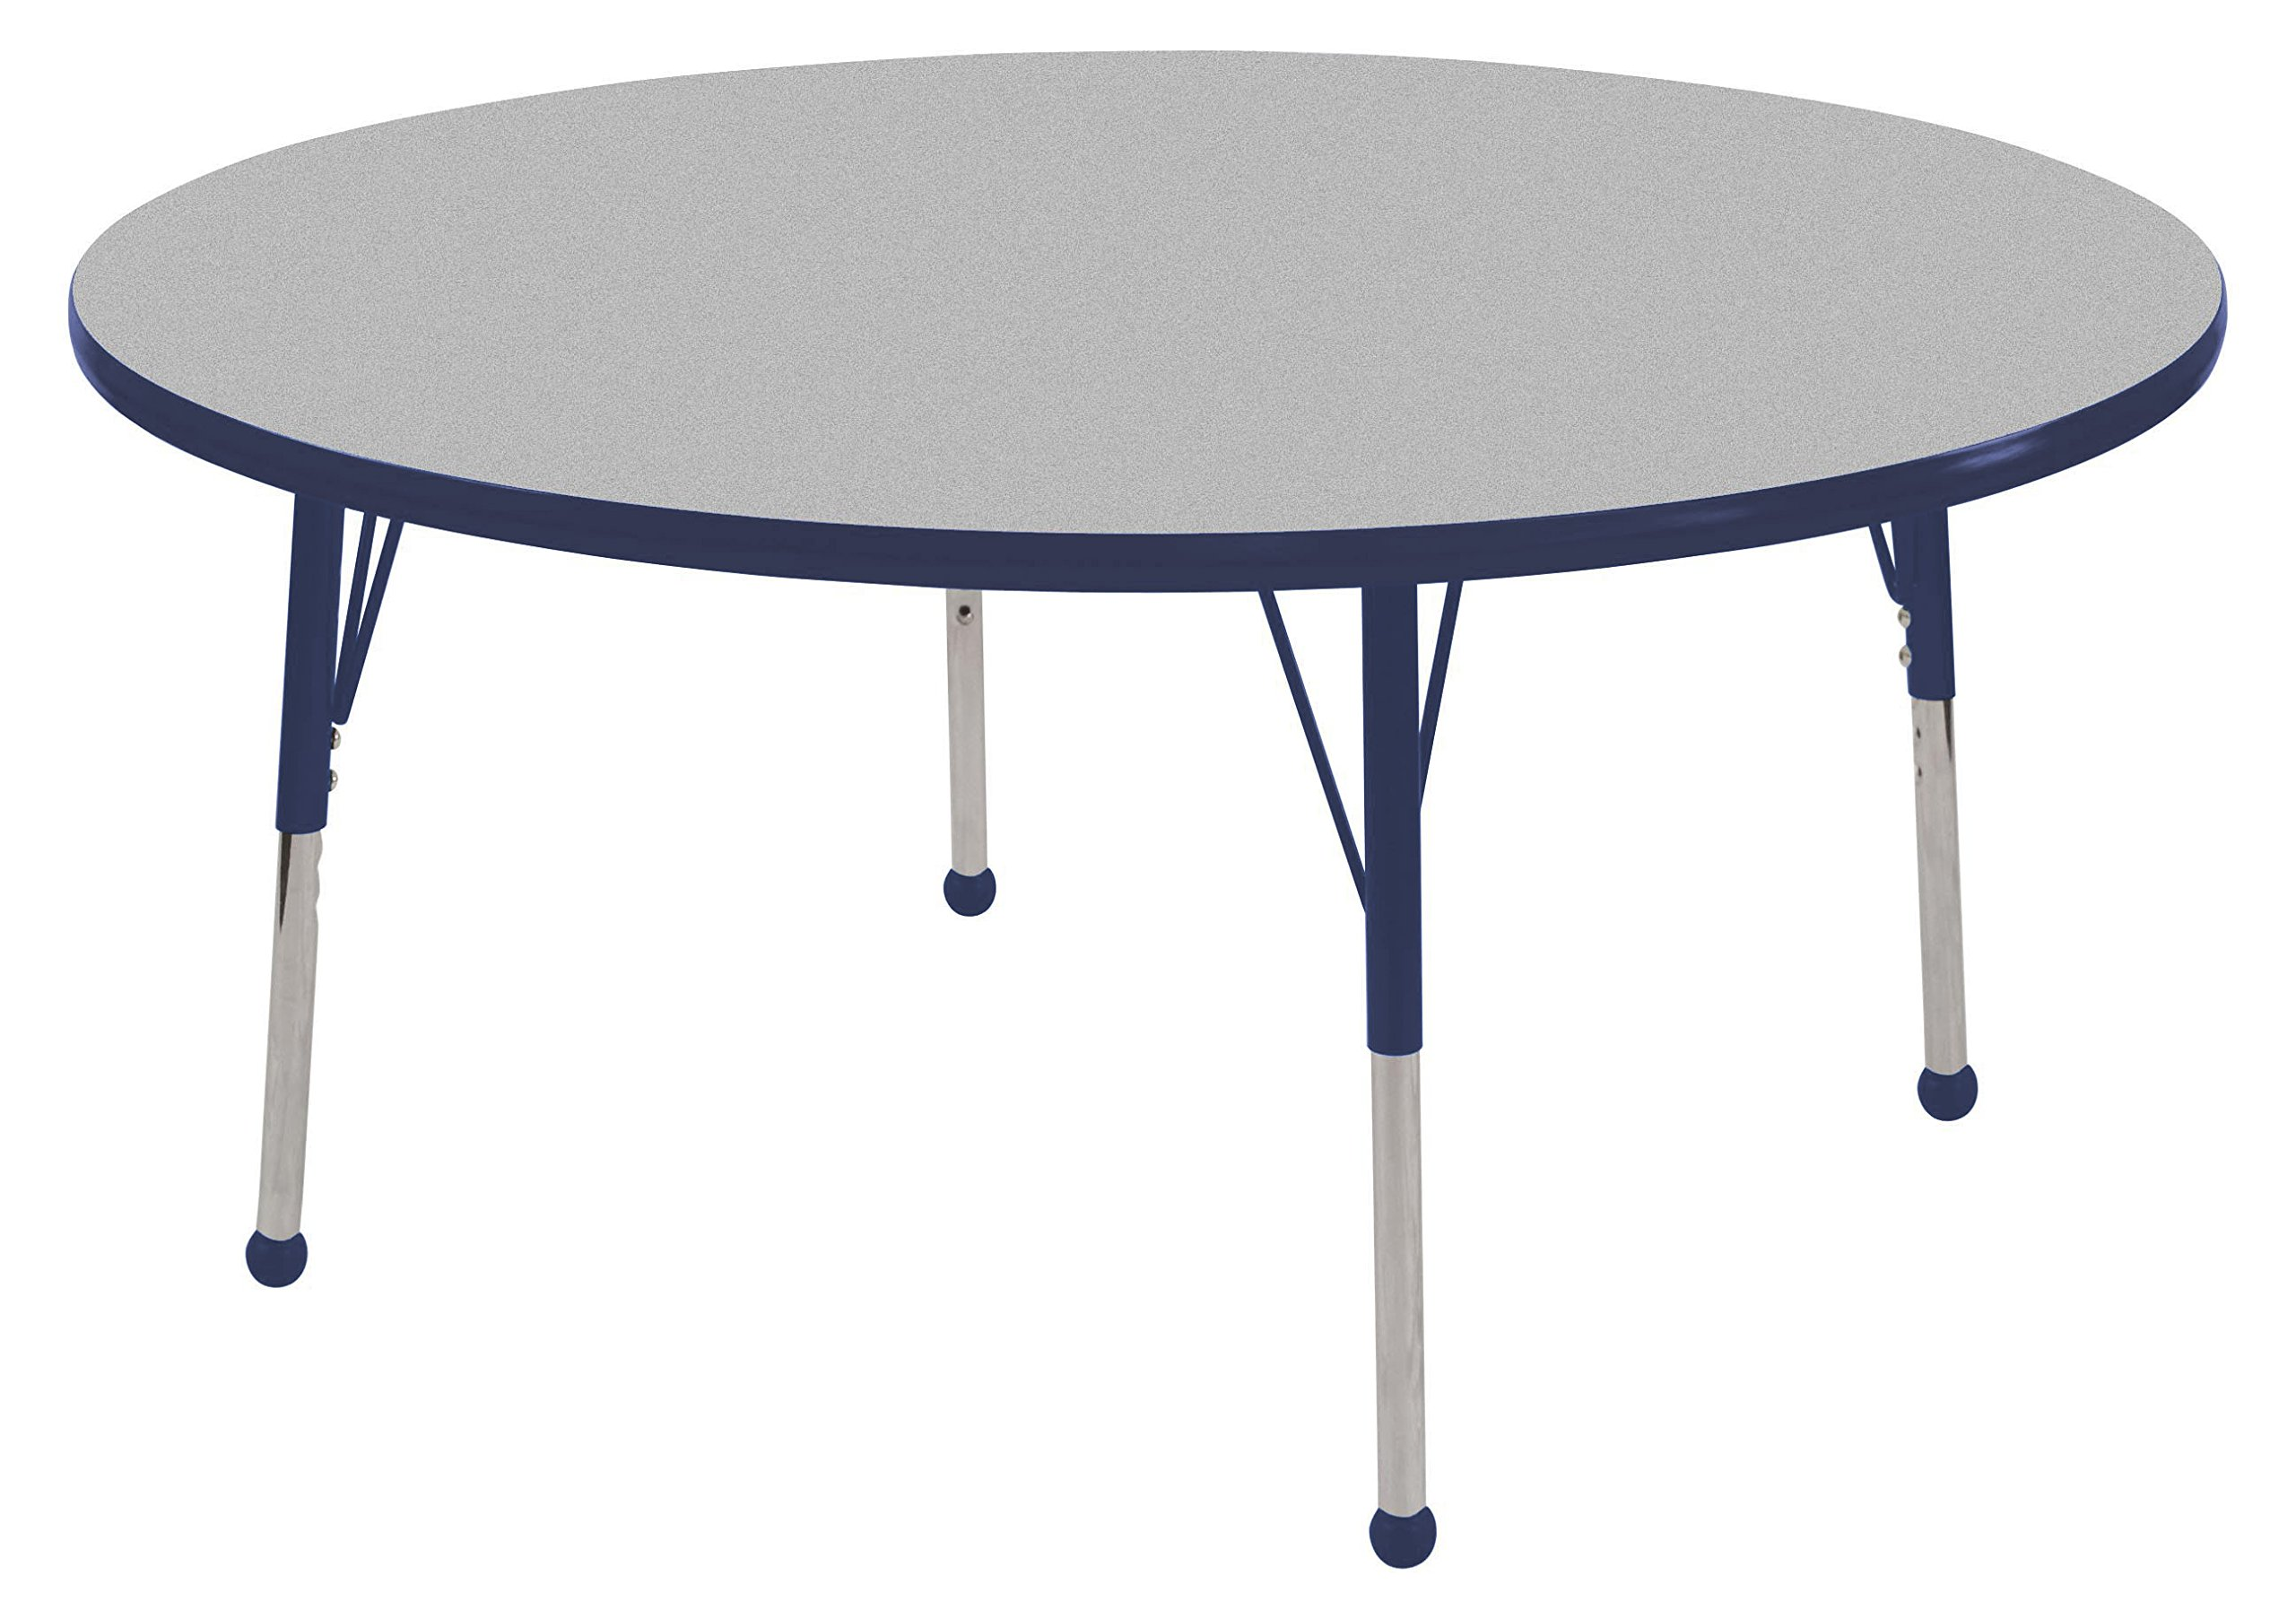 ECR4Kids T-Mold 48'' Round Activity School Table, Toddler Legs w/ Ball Glides, Adjustable Height 15-23 inch (Grey/Navy)